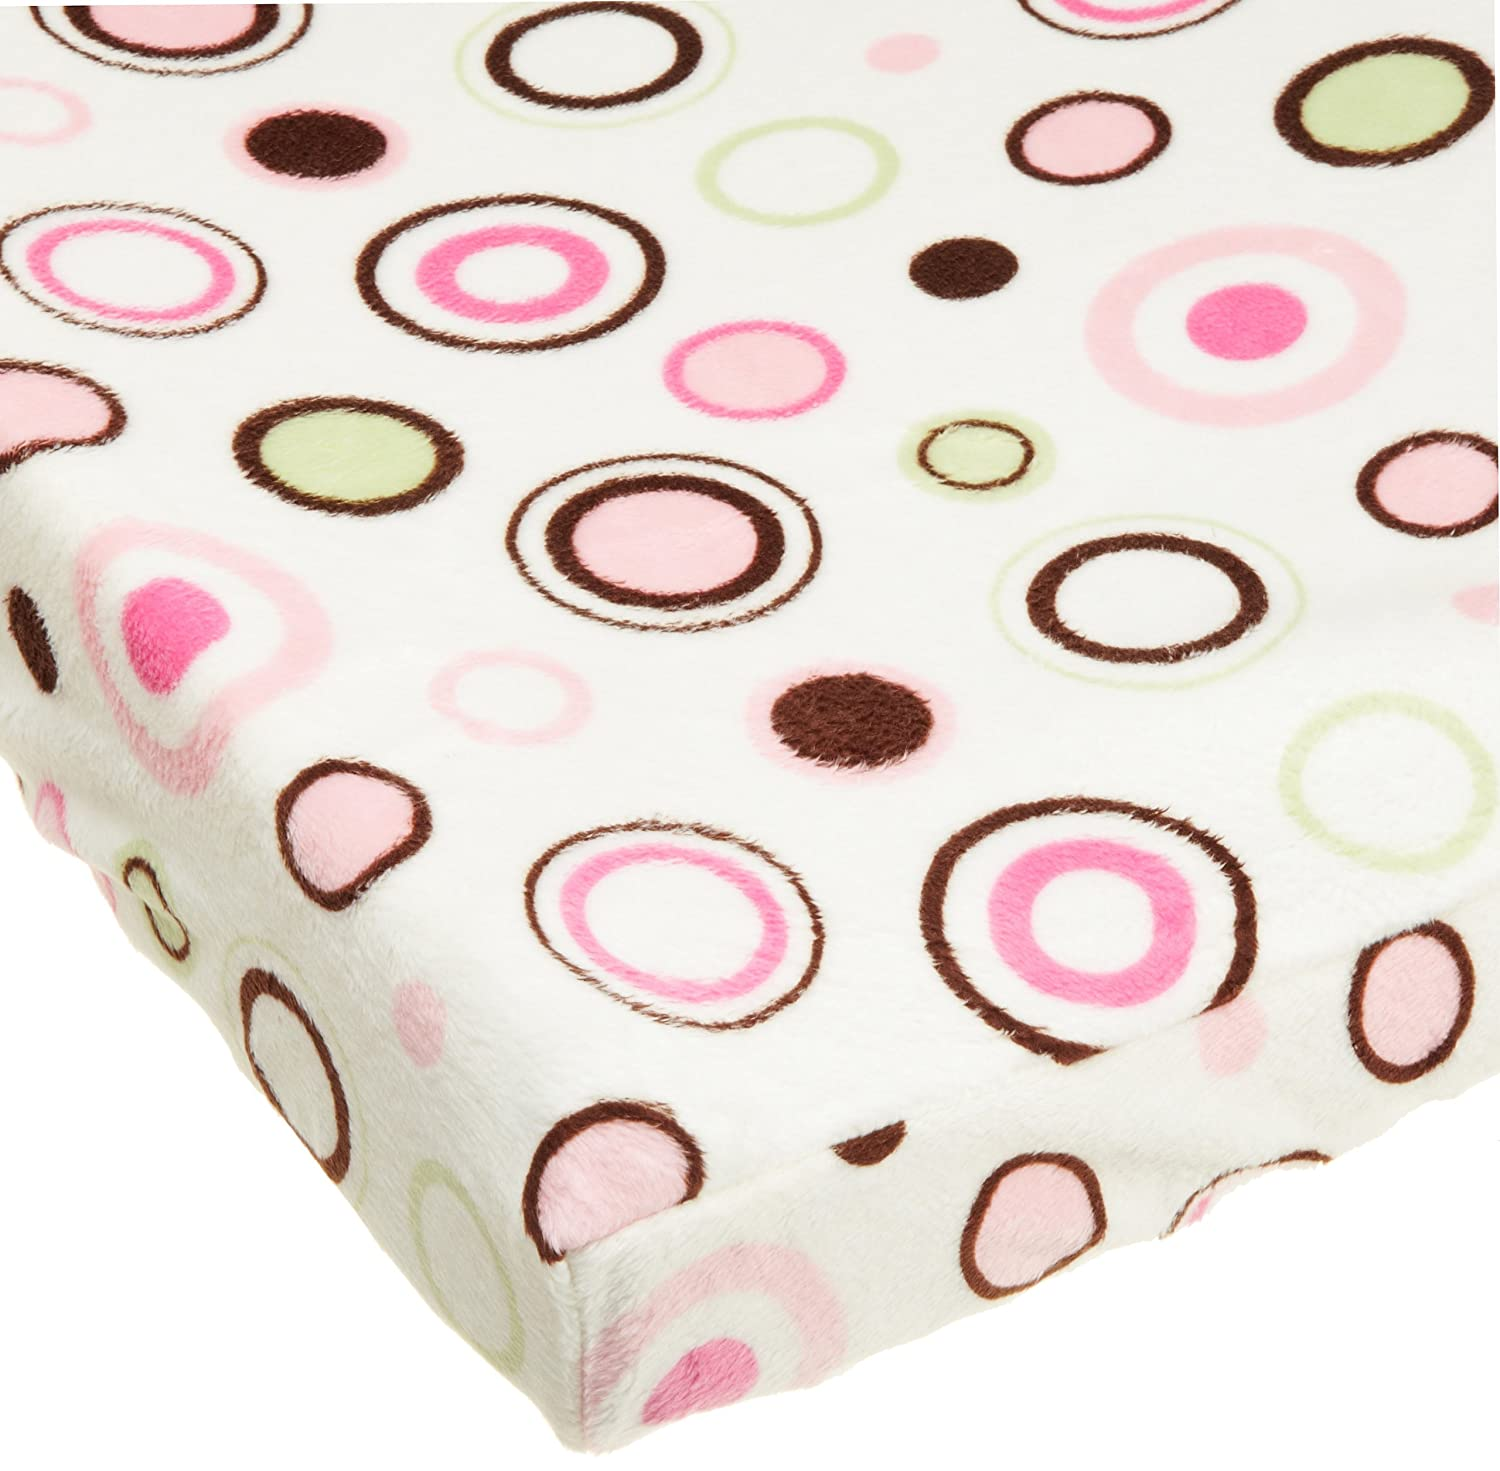 Spring new work one after another Carters Super Ranking TOP8 Soft Printed Changing Cover Circles Pink Dis Pad